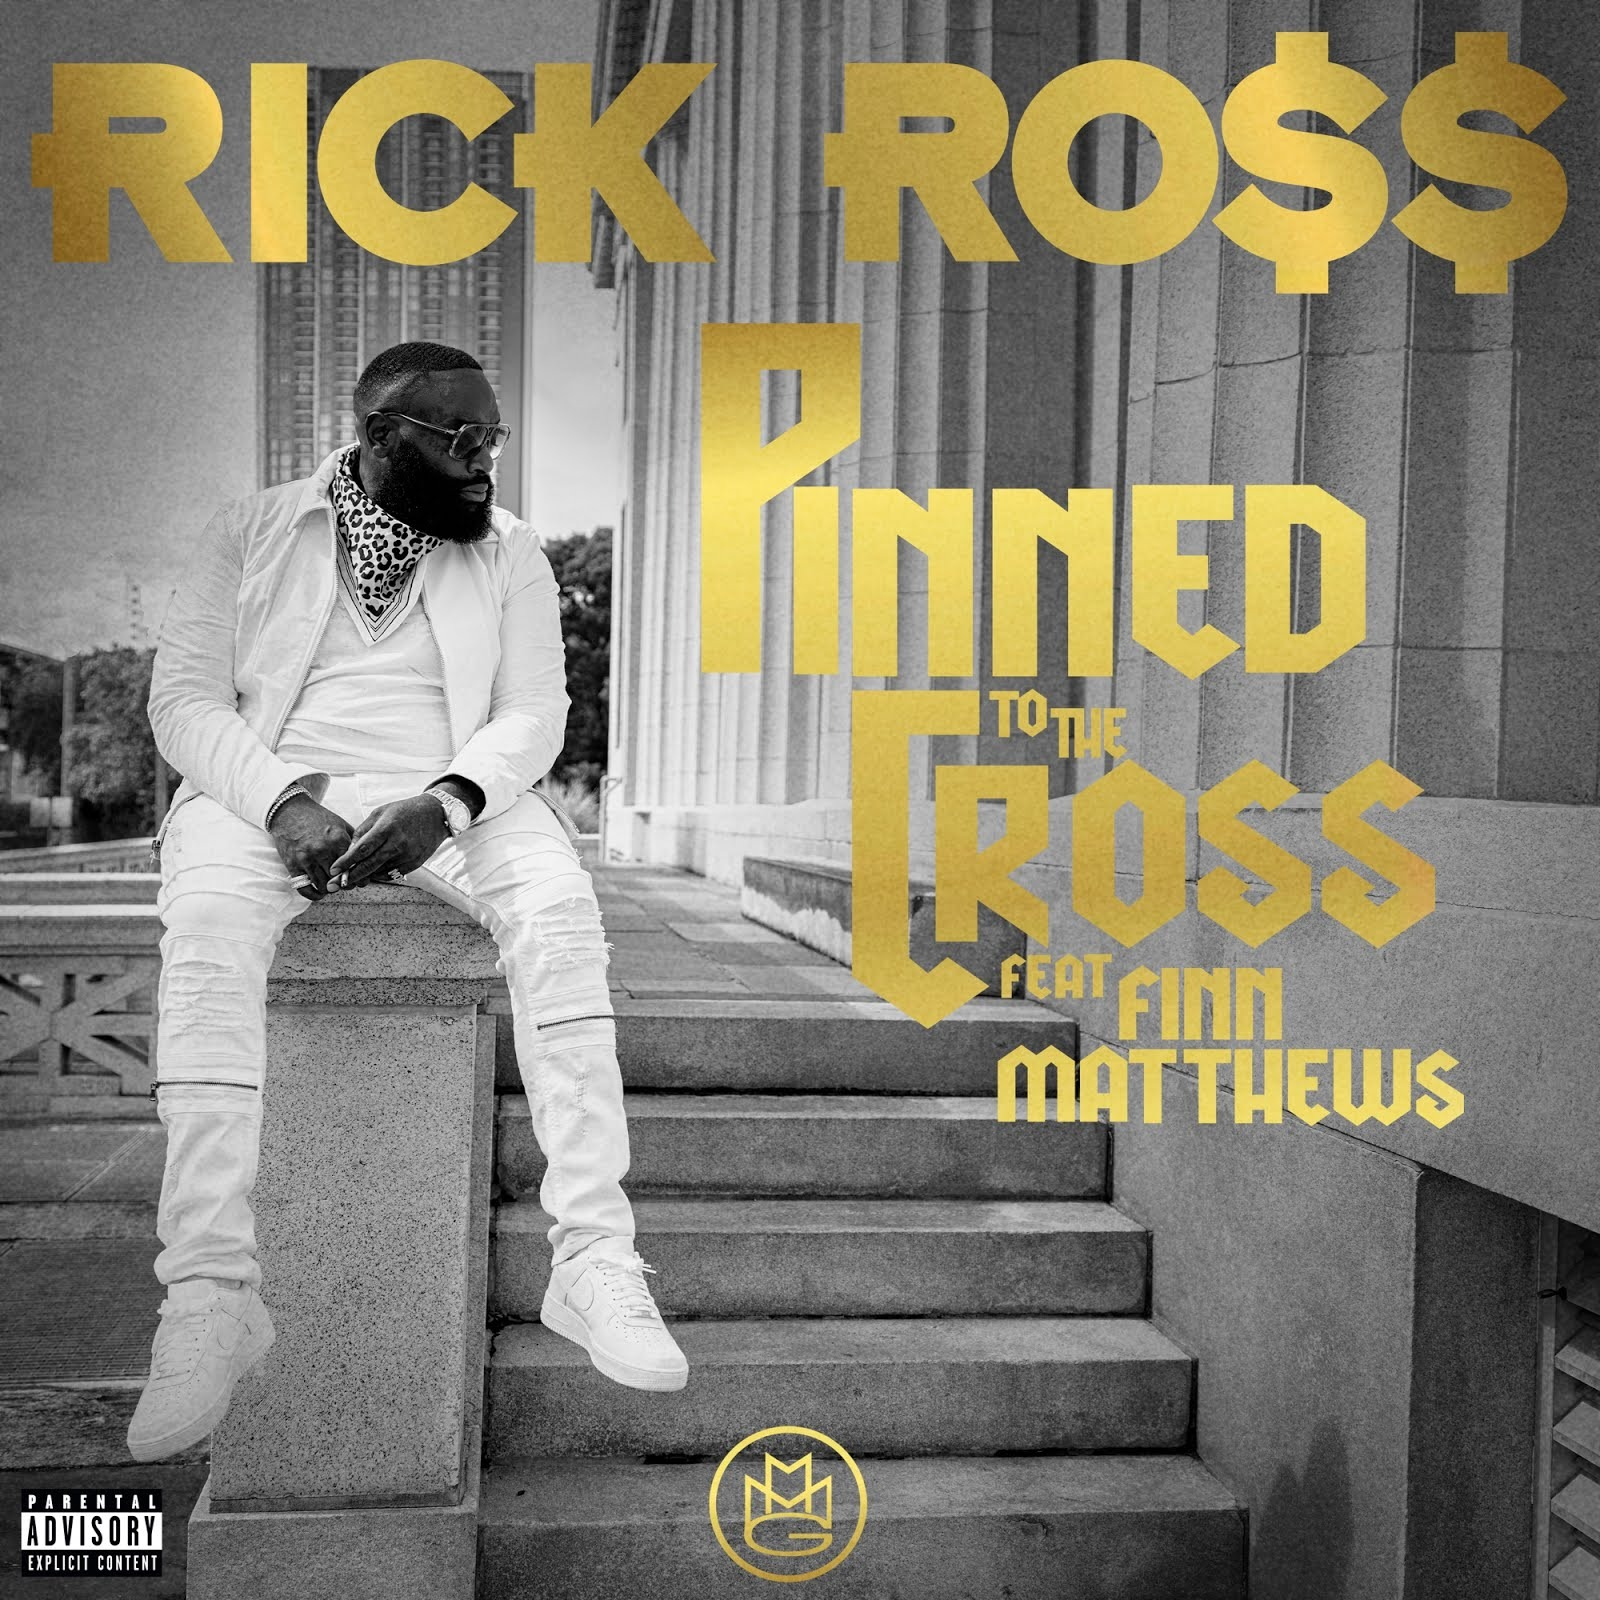 Rick Ross - Pinned to the Cross (feat. Finn Matthews)